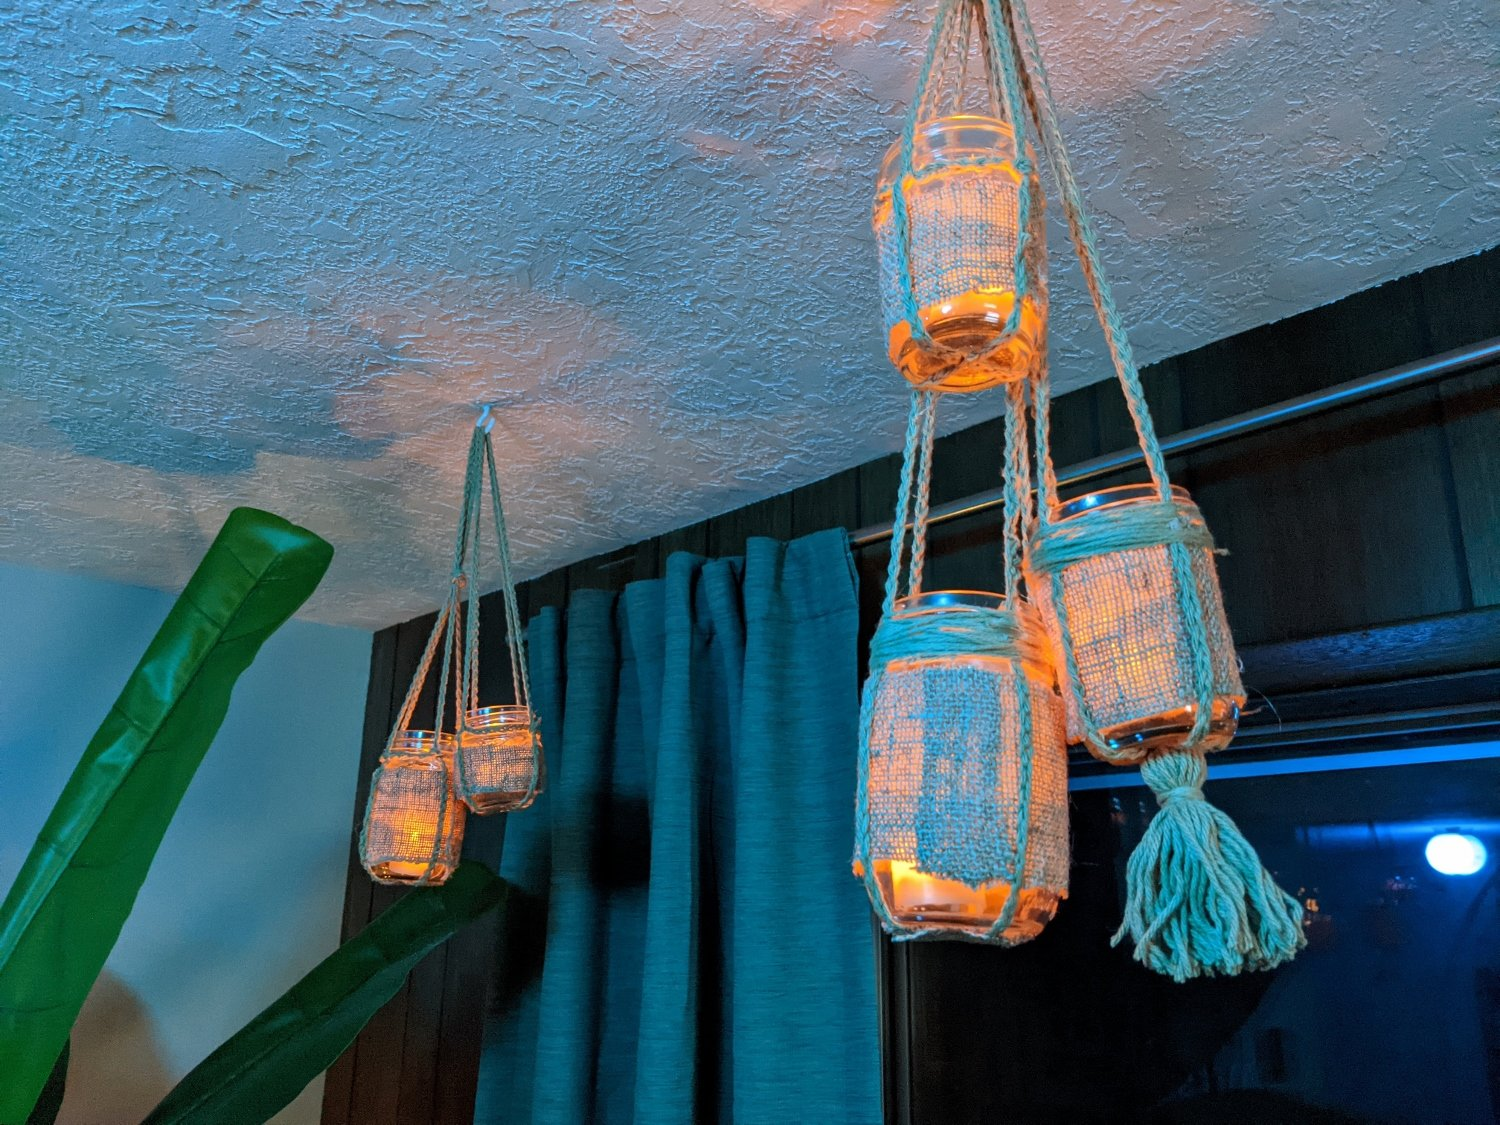 Handmade tiki bar lights in glass jars with LED candles and crocheted hangers